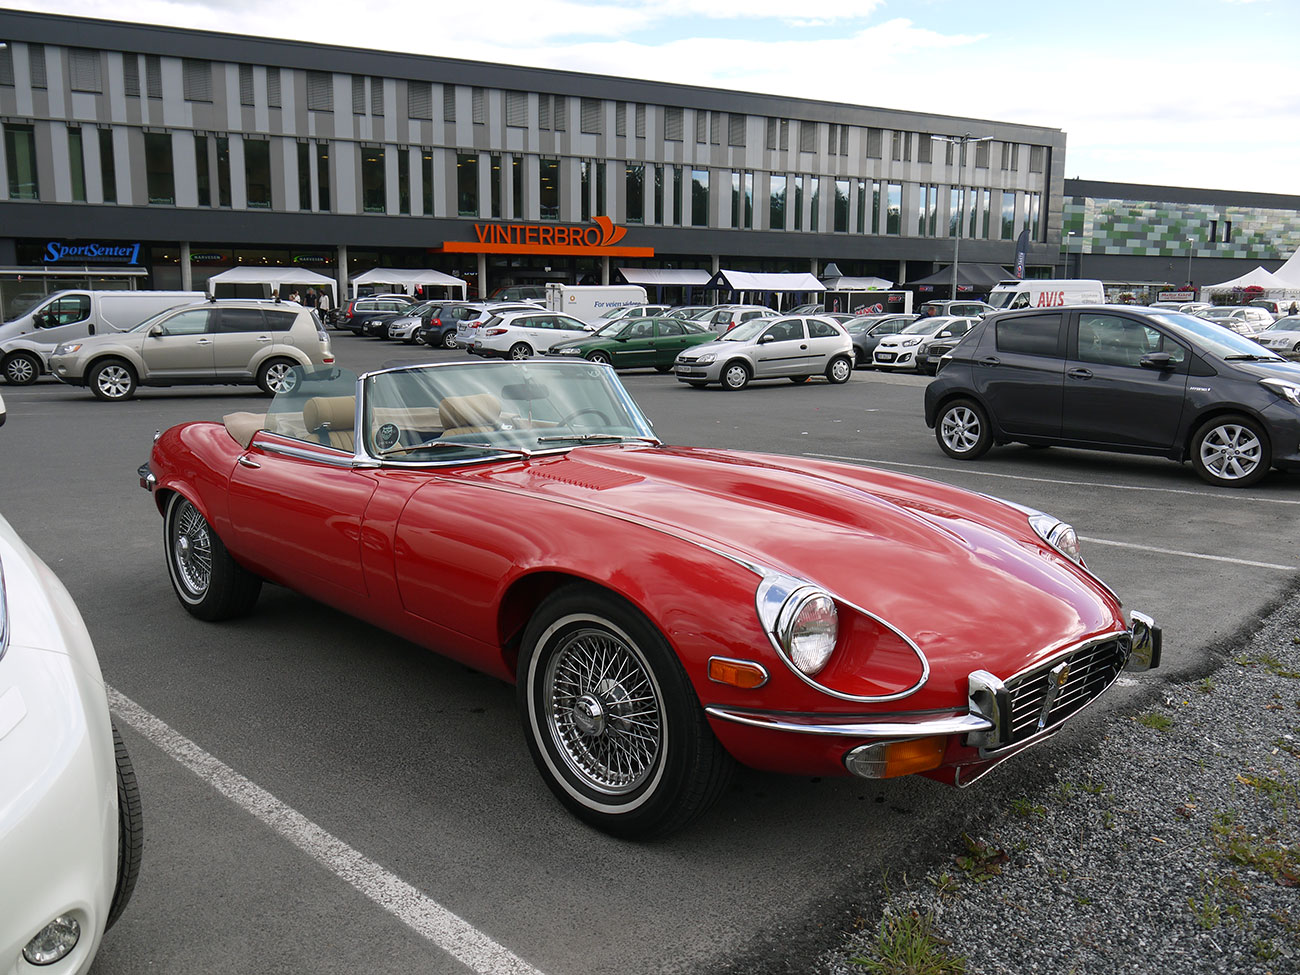 1974 Jaguar E-type Series 3 V-12 Roadster